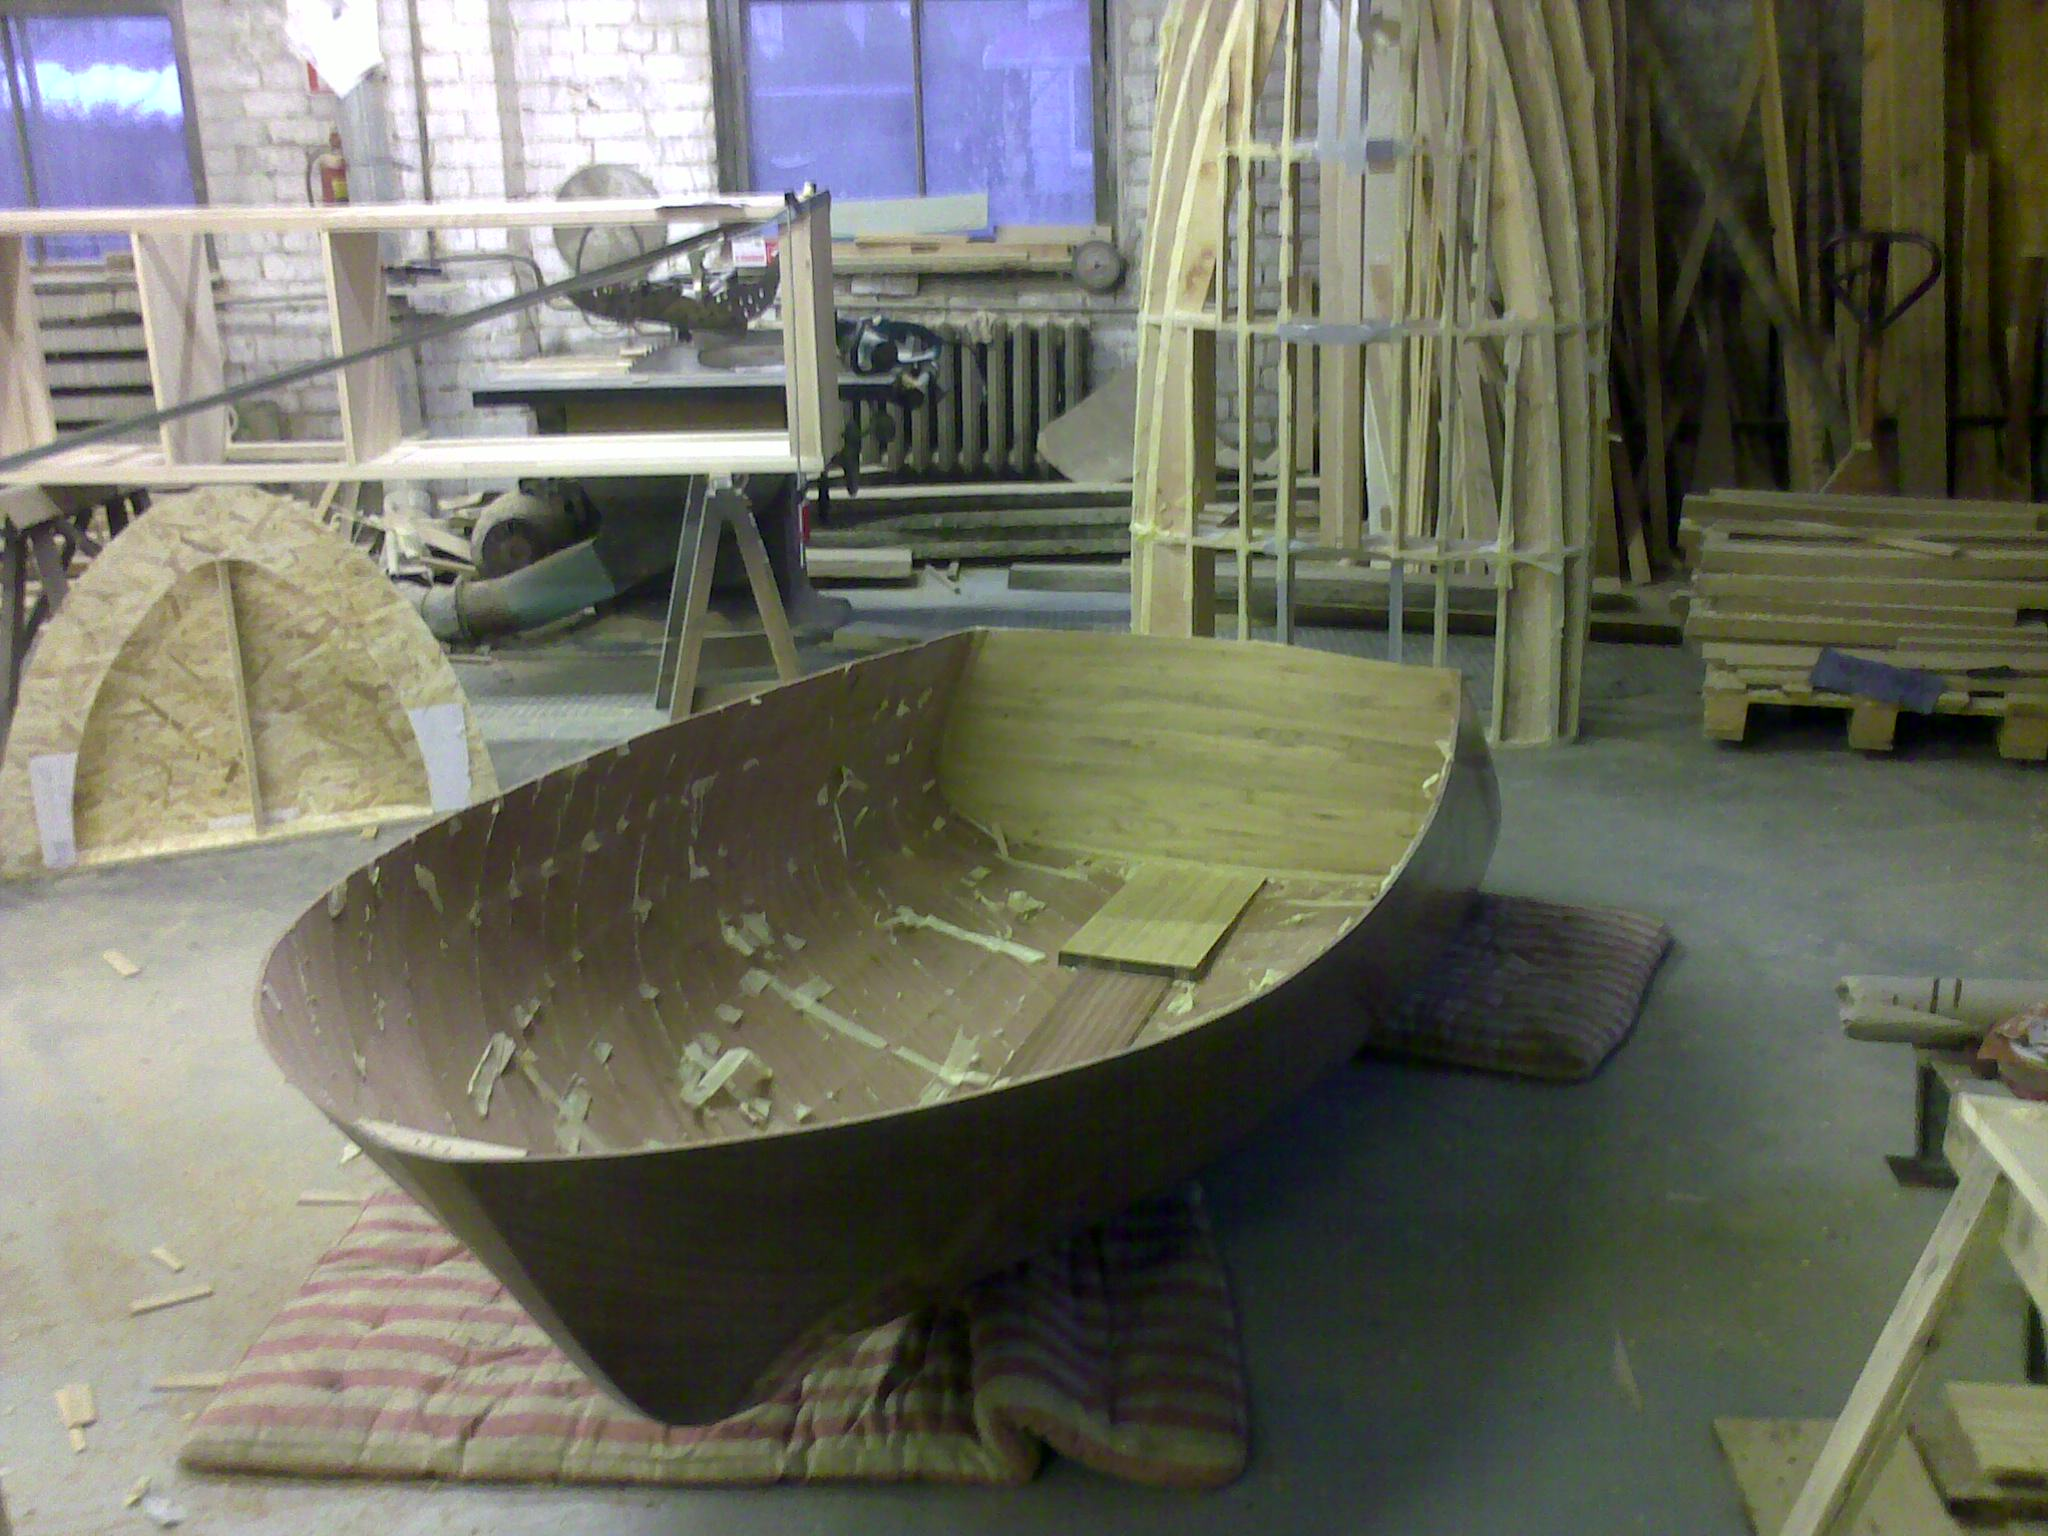 Build of small mahogany sailboat with water jet propulsion | Boat ...